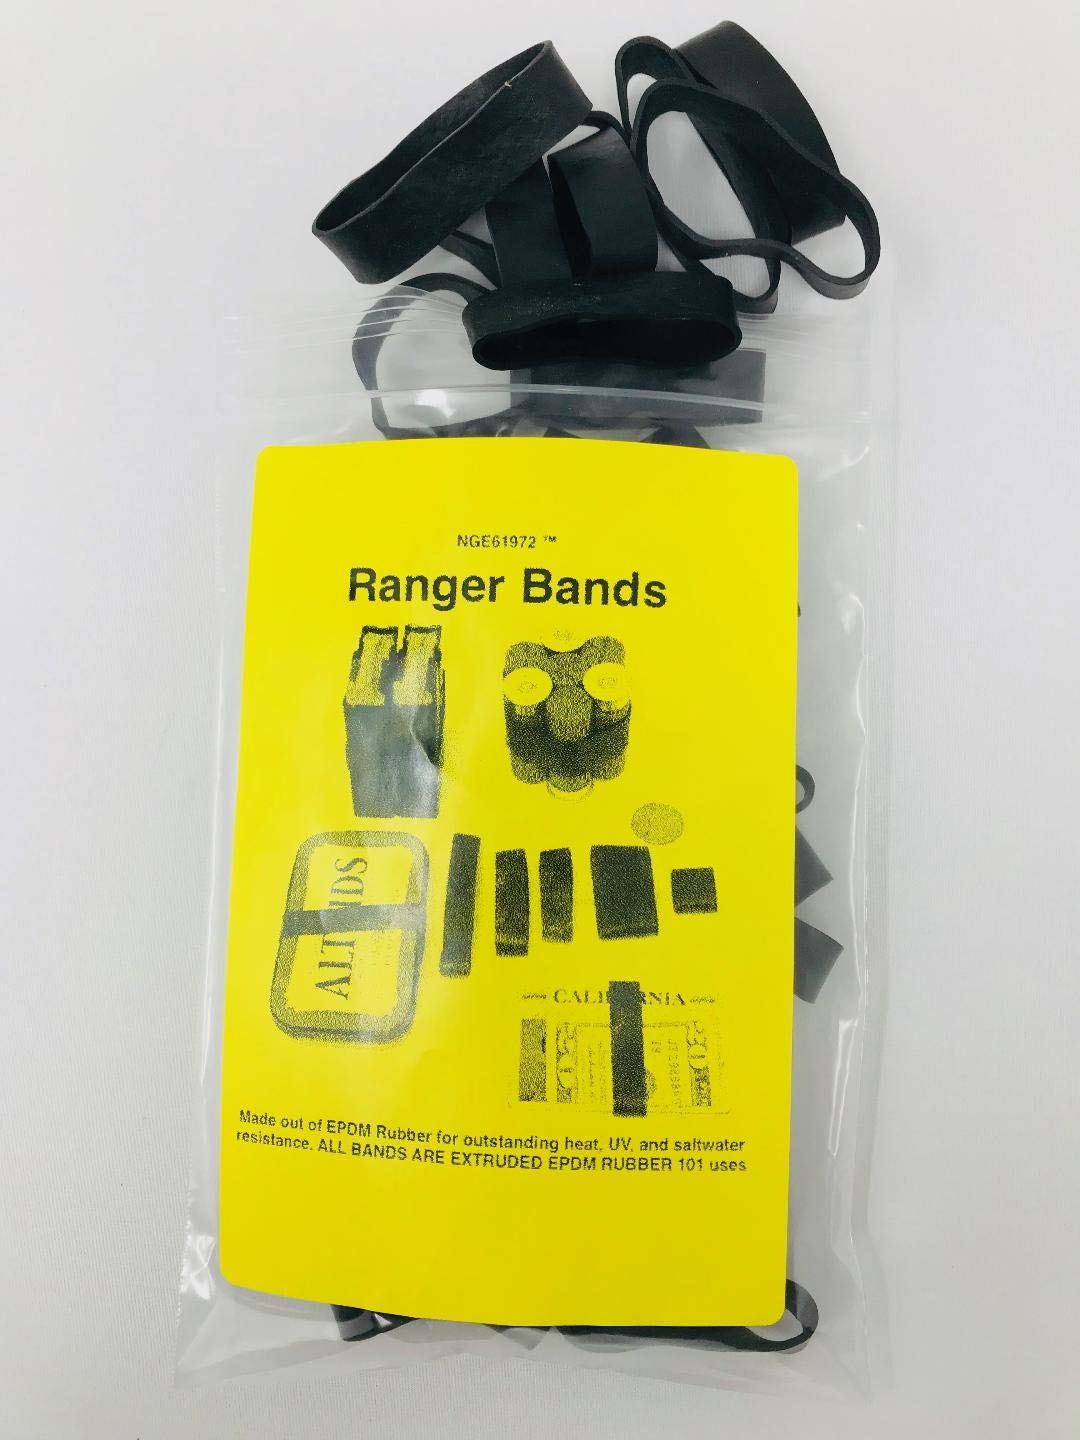 NG-E6-1972 ™ Ranger Bands 24 Mixed Made From EPDM Rubber: for Survival and Strapping Gear and 1 Paracord Bracelet with Whistle. Ranger Bands are Made in the USA